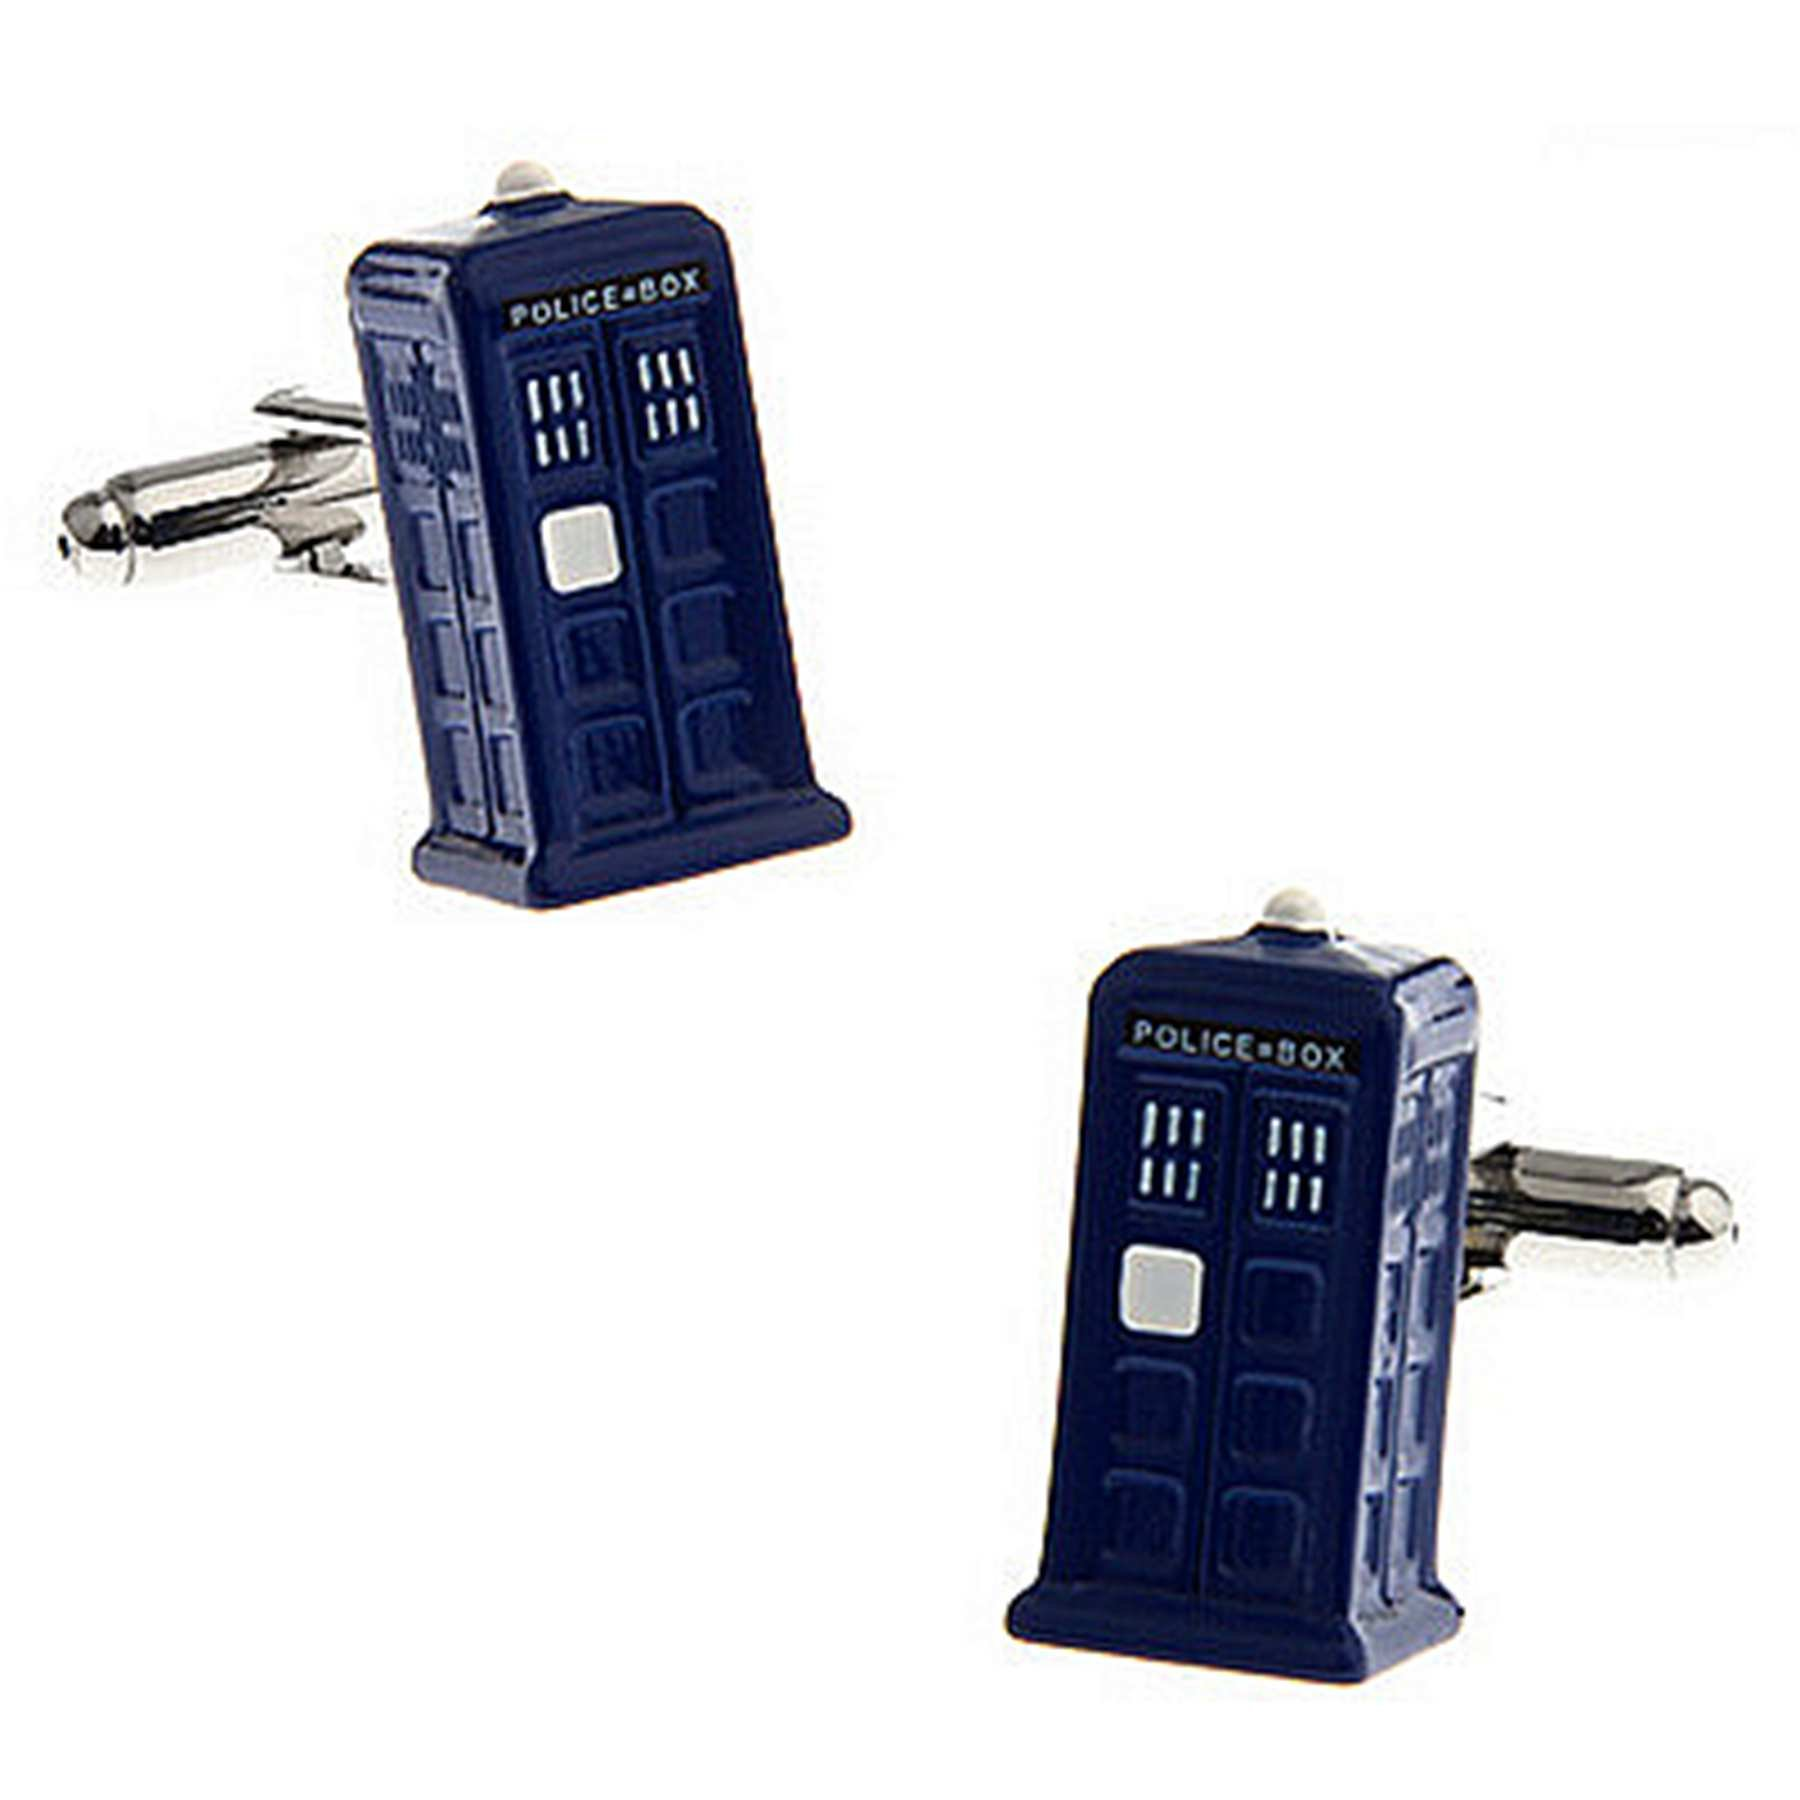 RXBC2011 Men's Police Box Style French Shirts Cufflinks 1 Pair Set